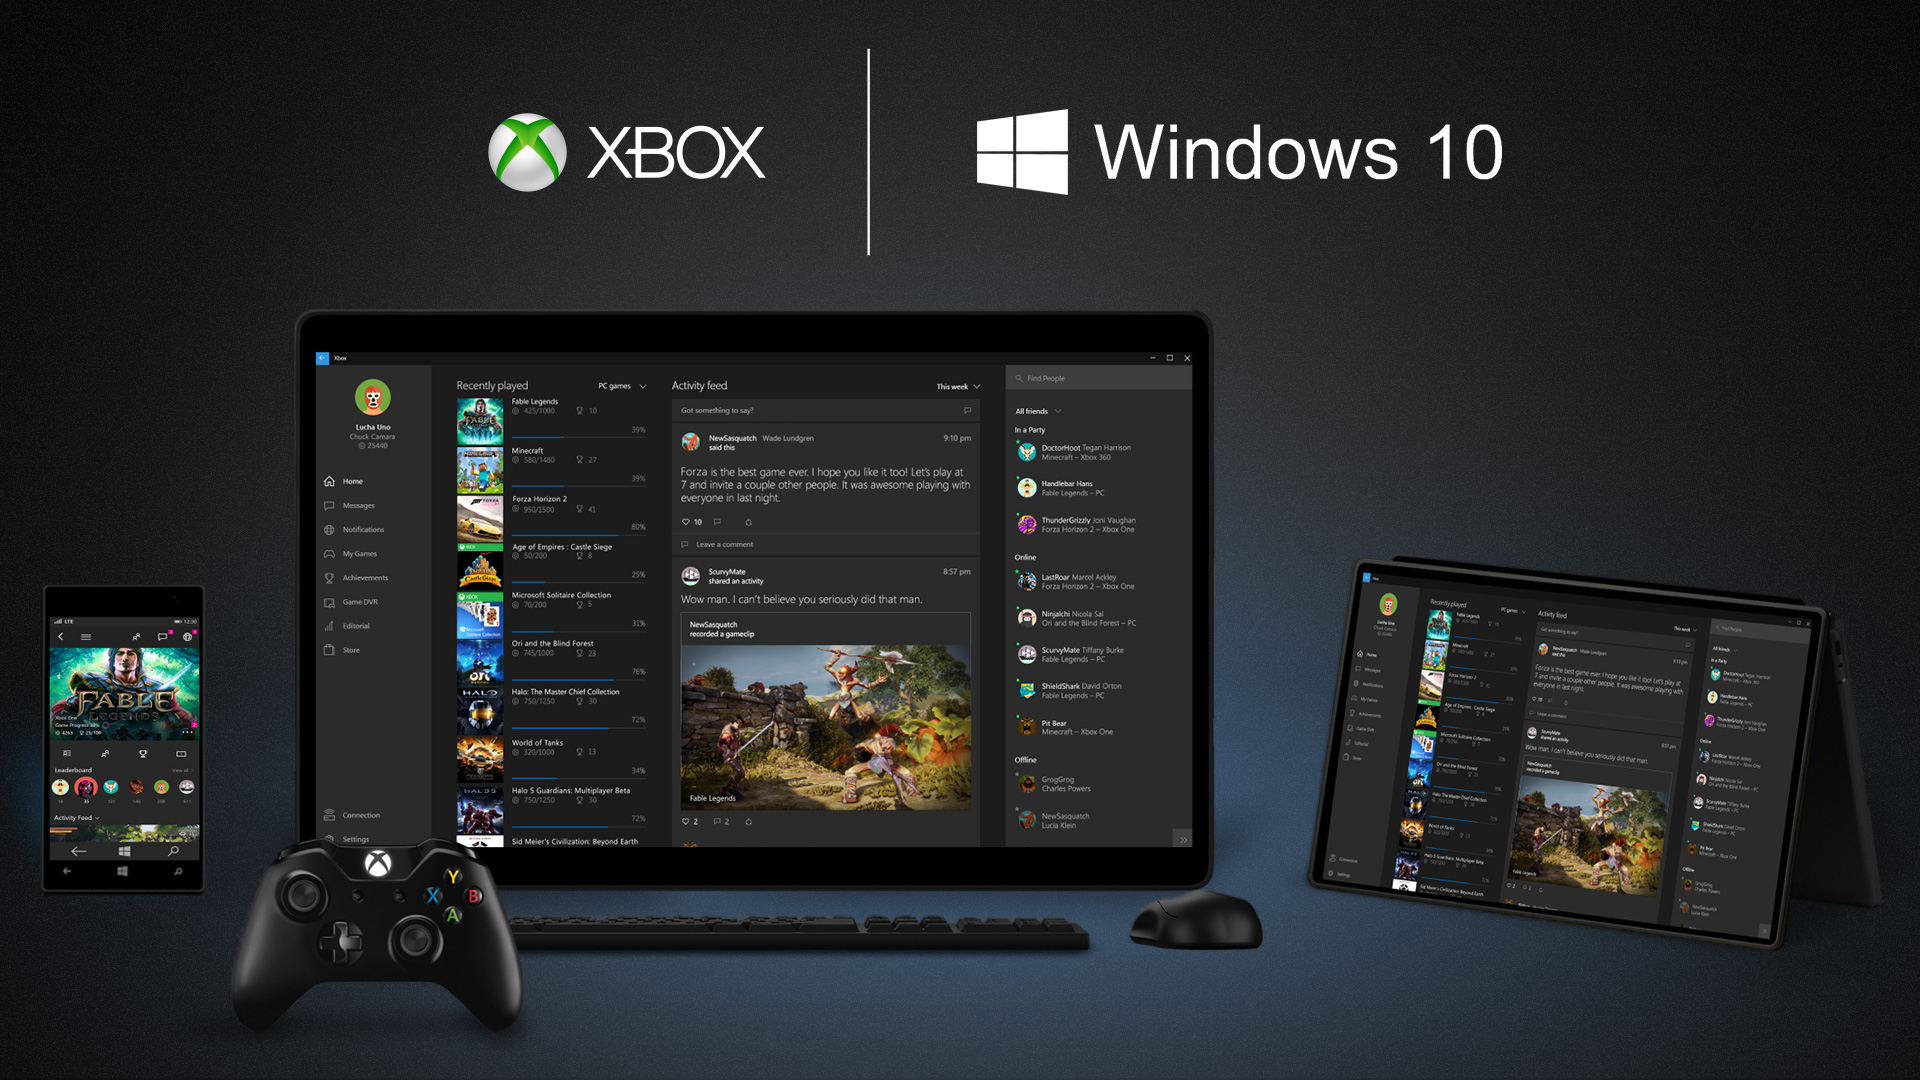 Microsoft: PC gaming is very important to Windows 10 and the company's success